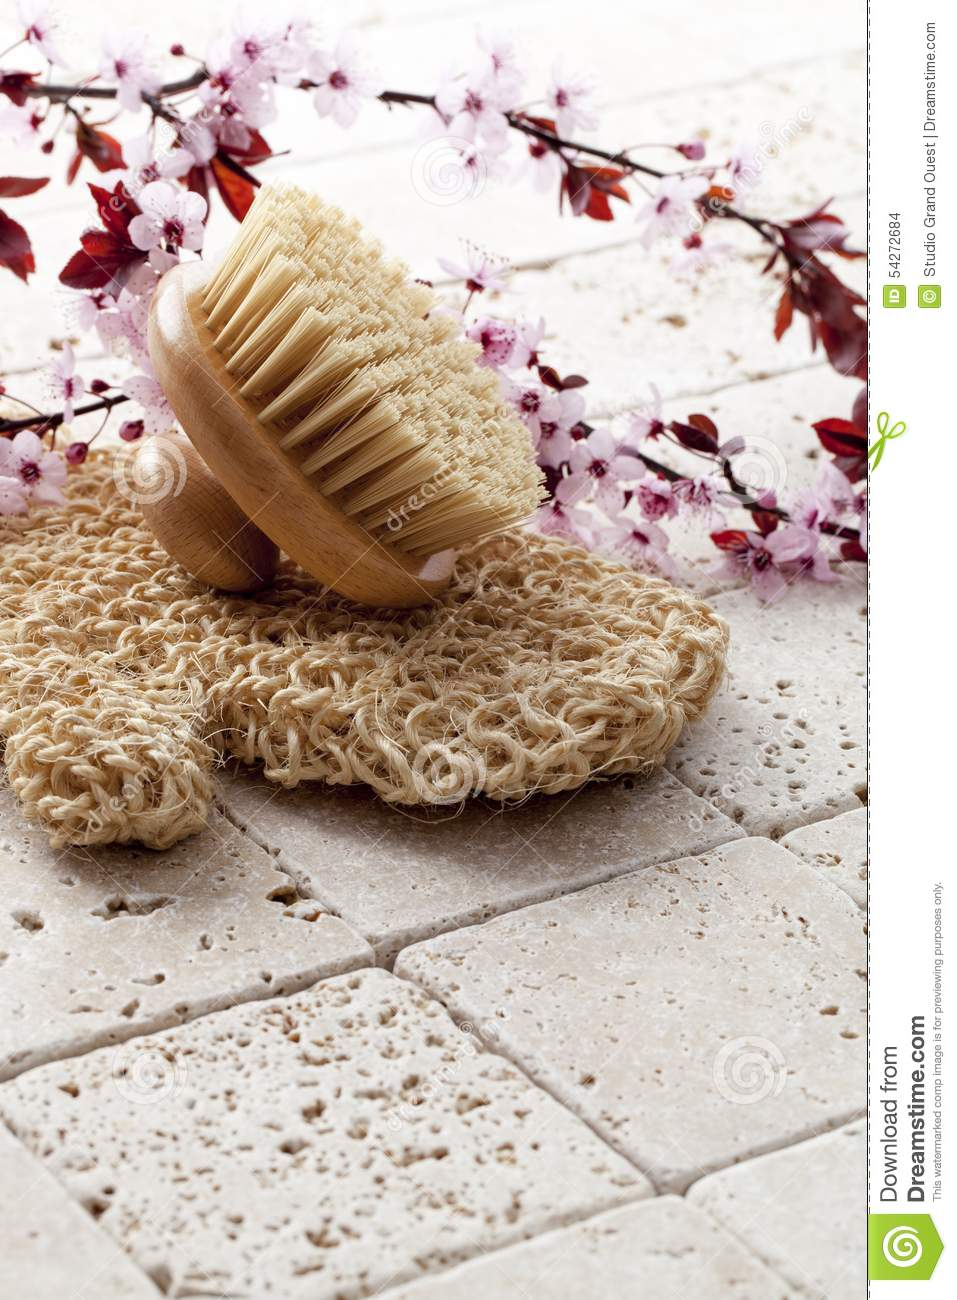 To Exfoliate With Pampering And Femininity To Exfoliate With Pampering And  Femininity Stock Photo Image